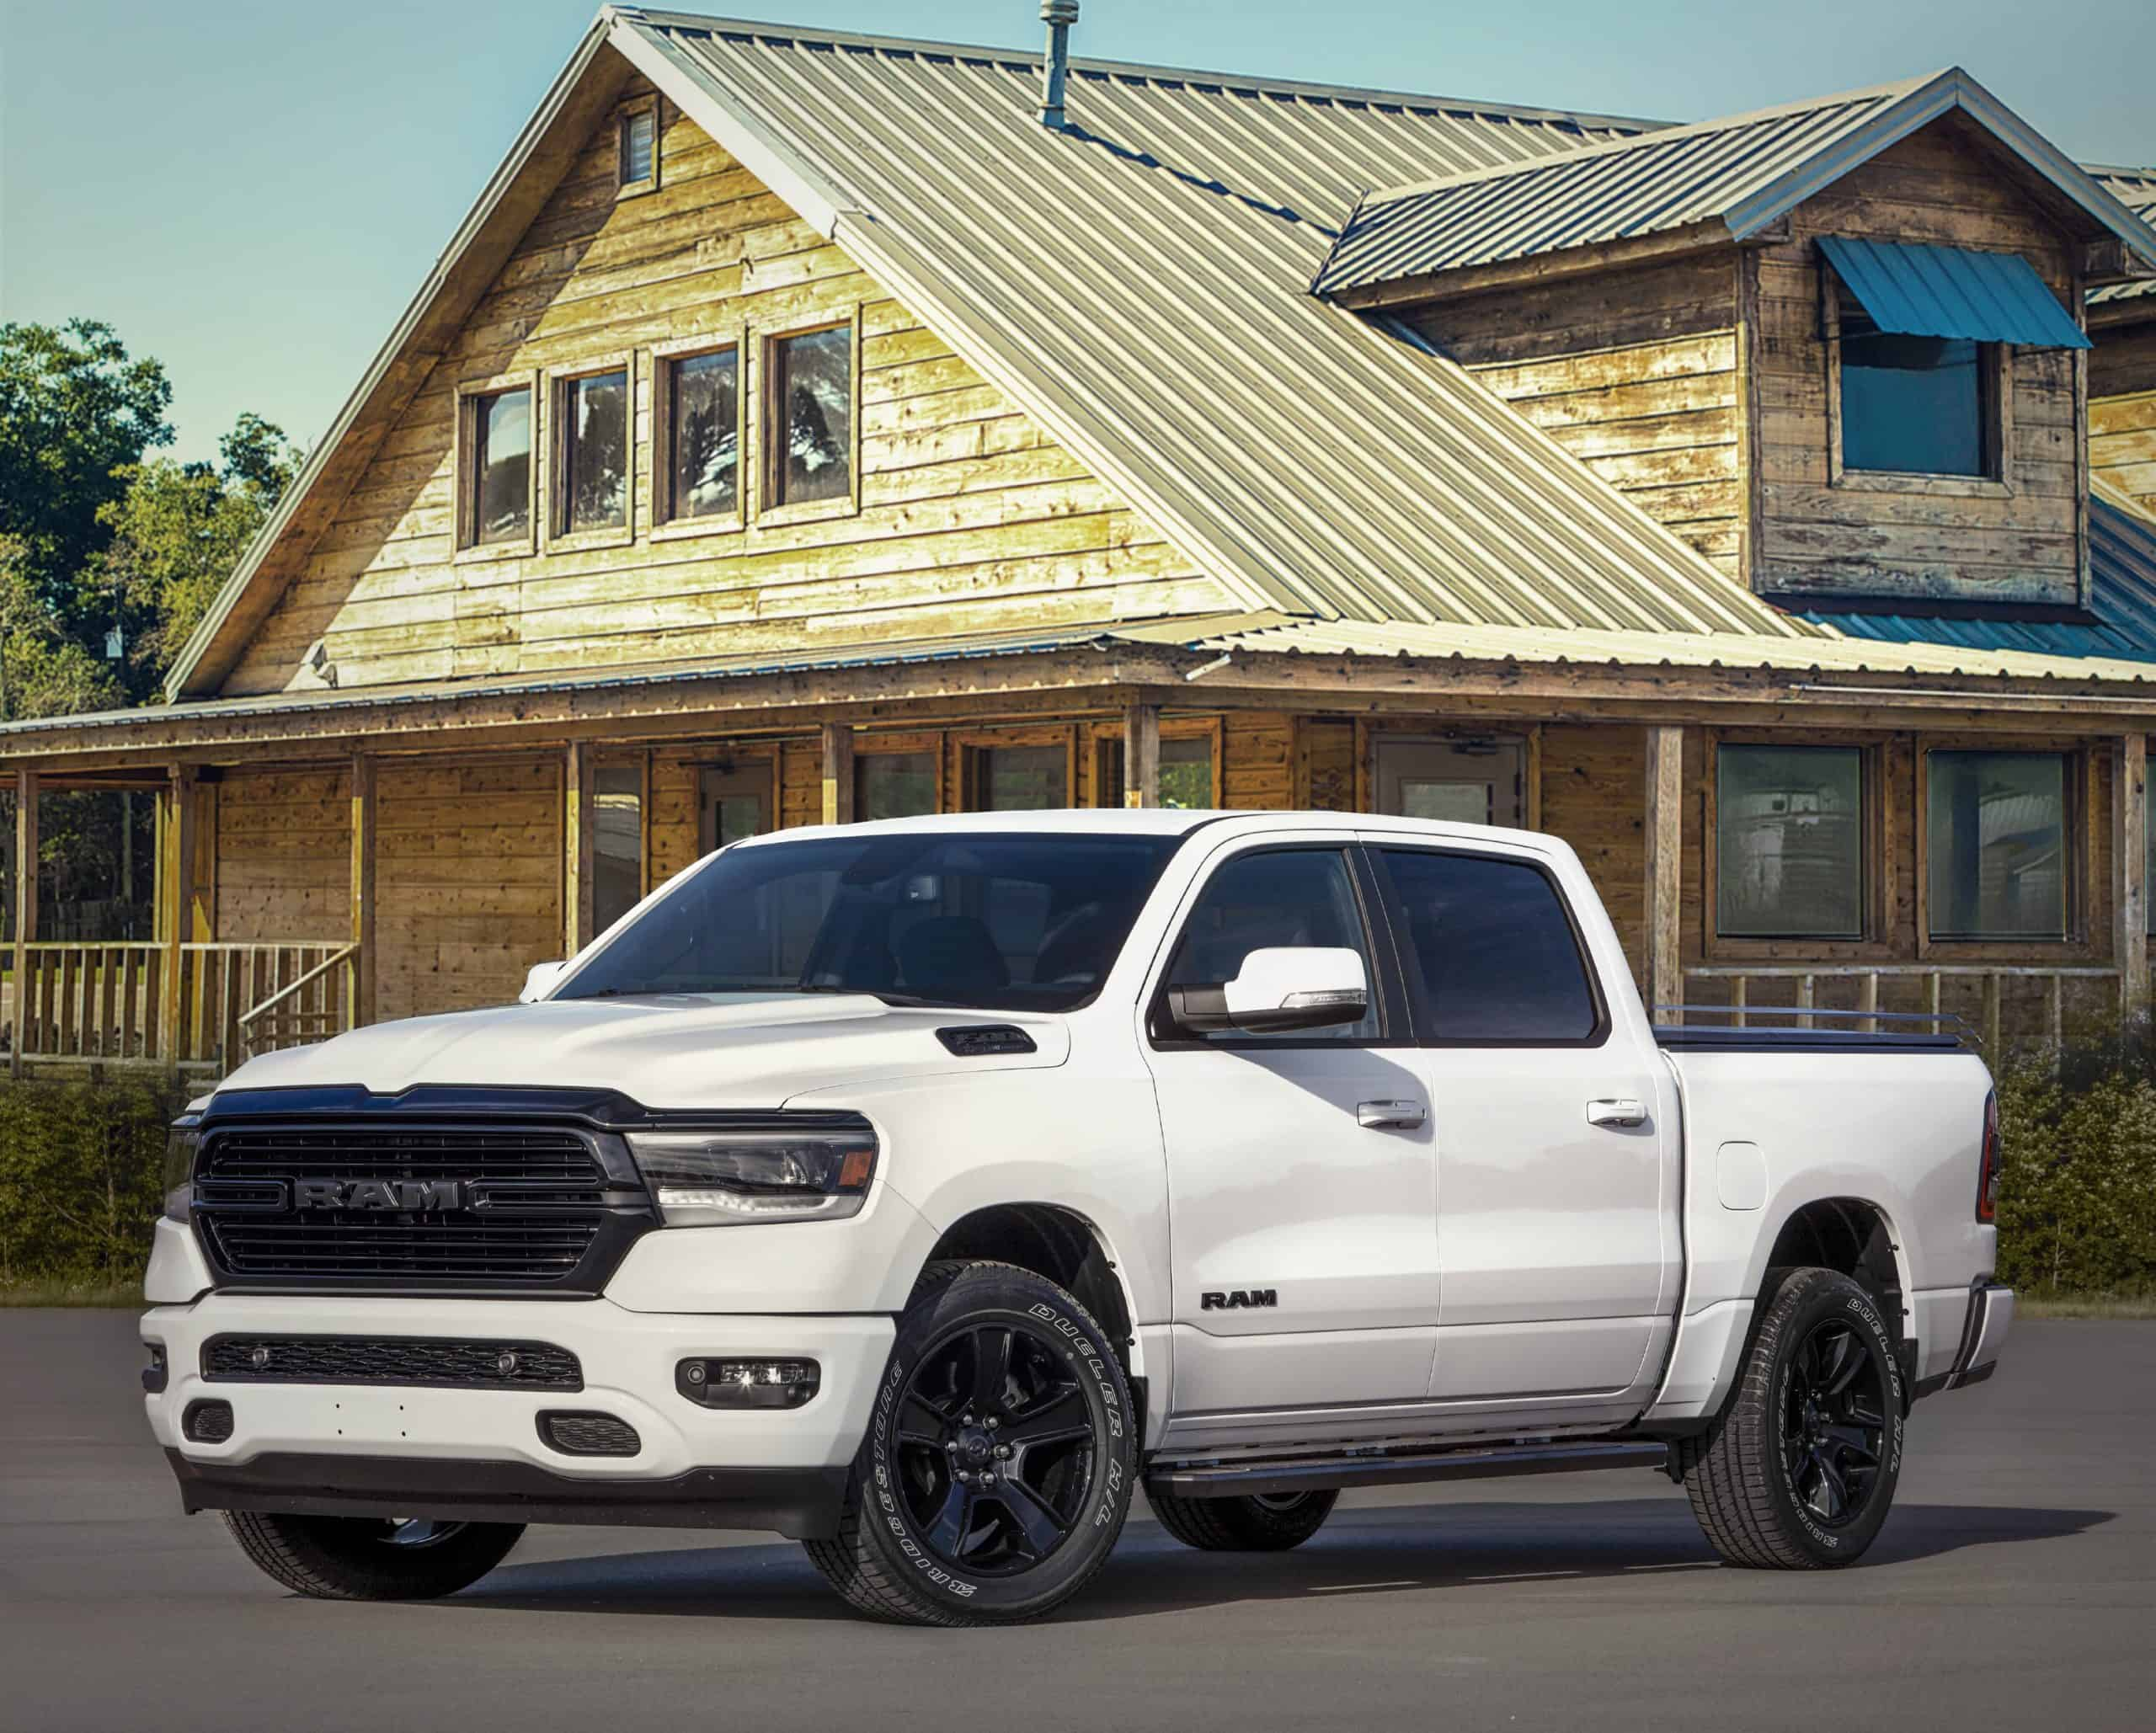 white RAM truck in front of huge wooden house